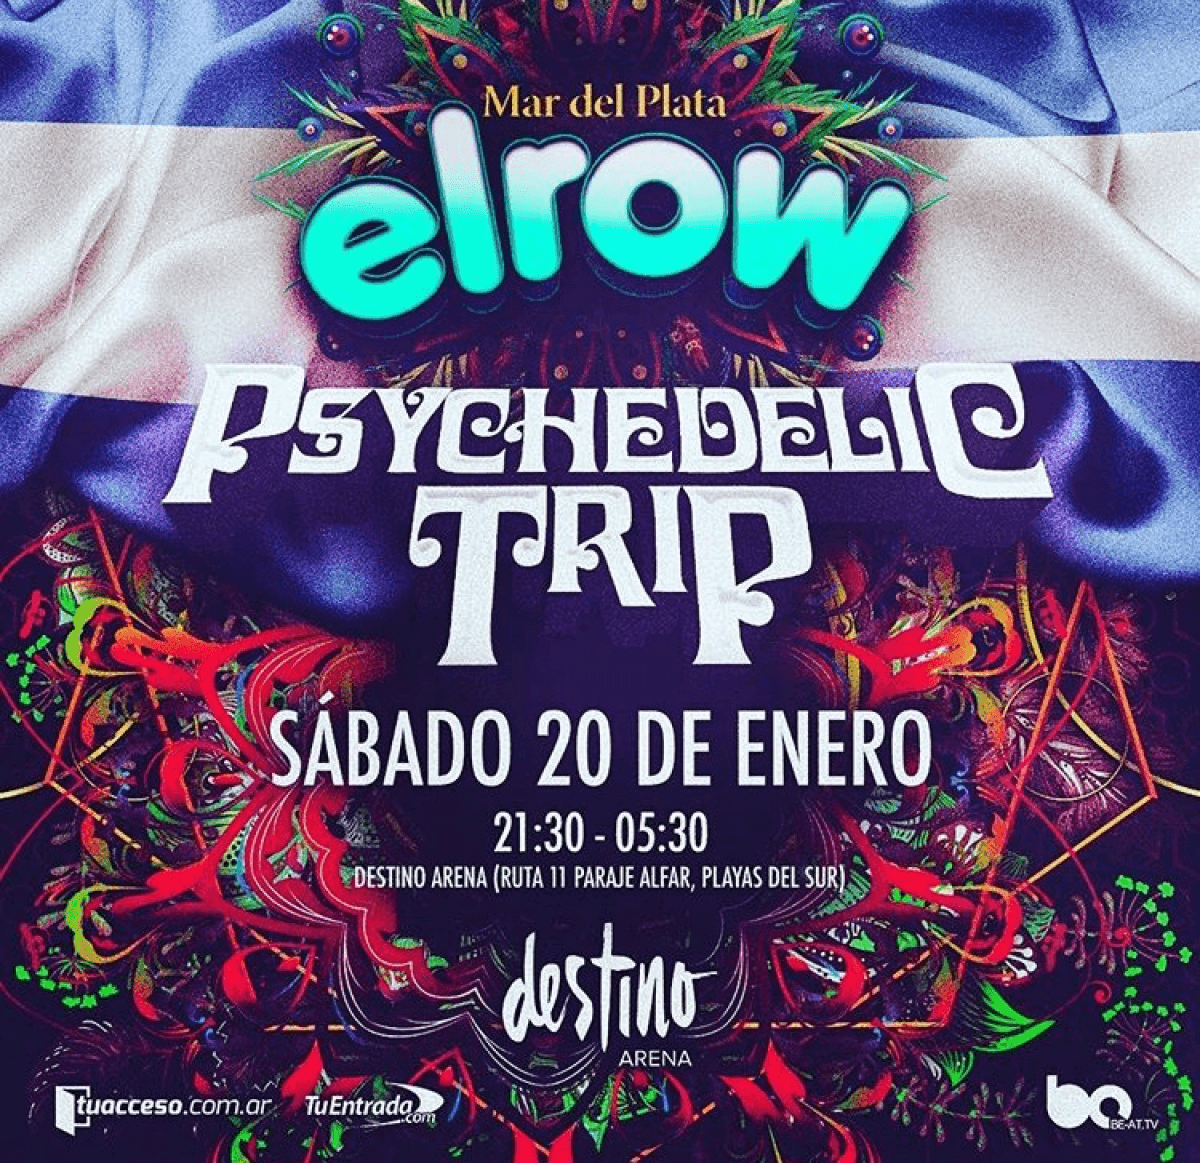 BAUM en el line up de elrow en Mar del Plata